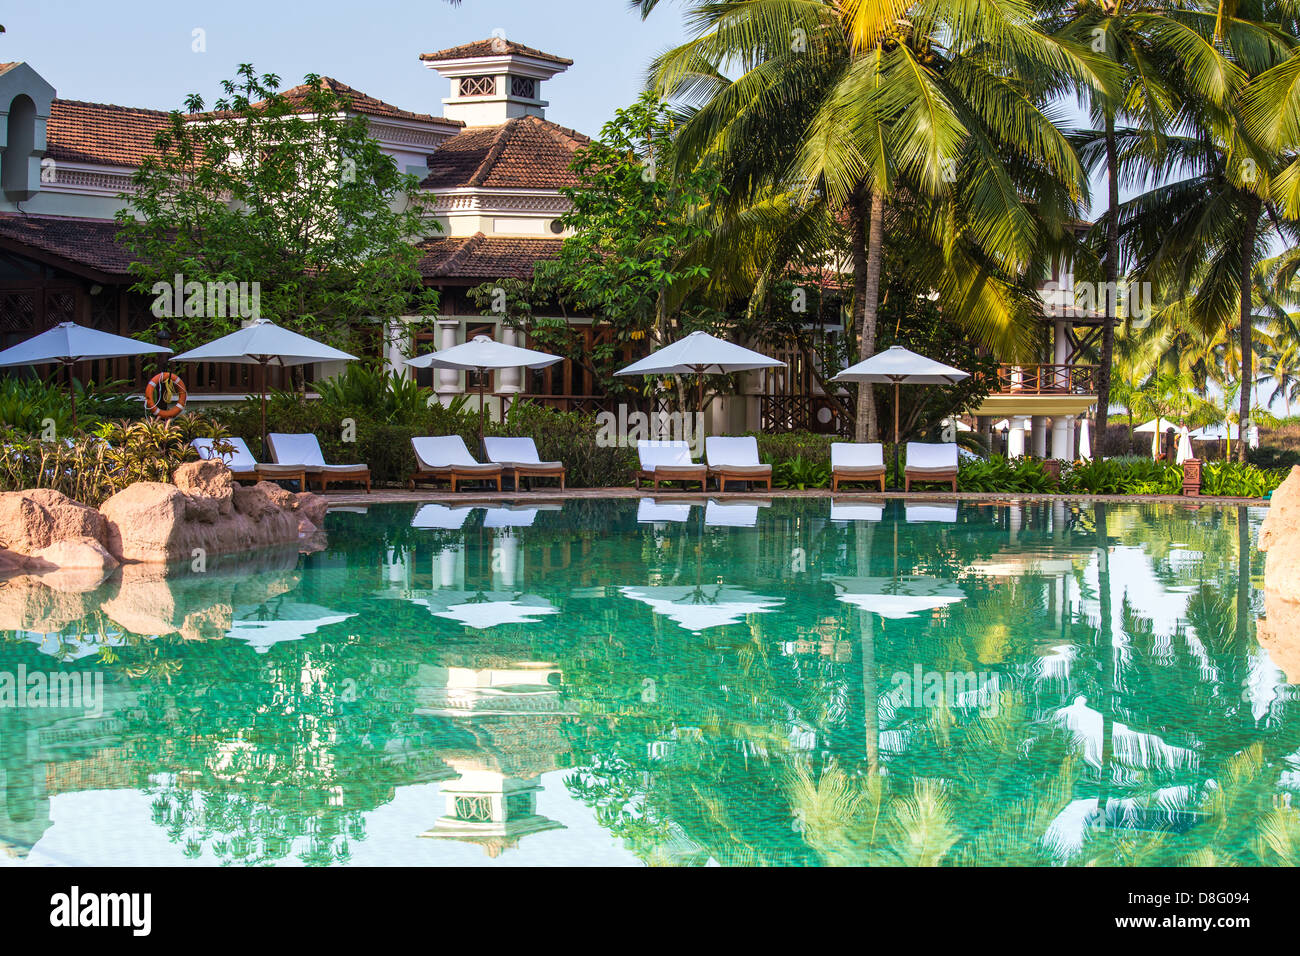 Hotel India Stock Photos Amp Hotel India Stock Images Alamy